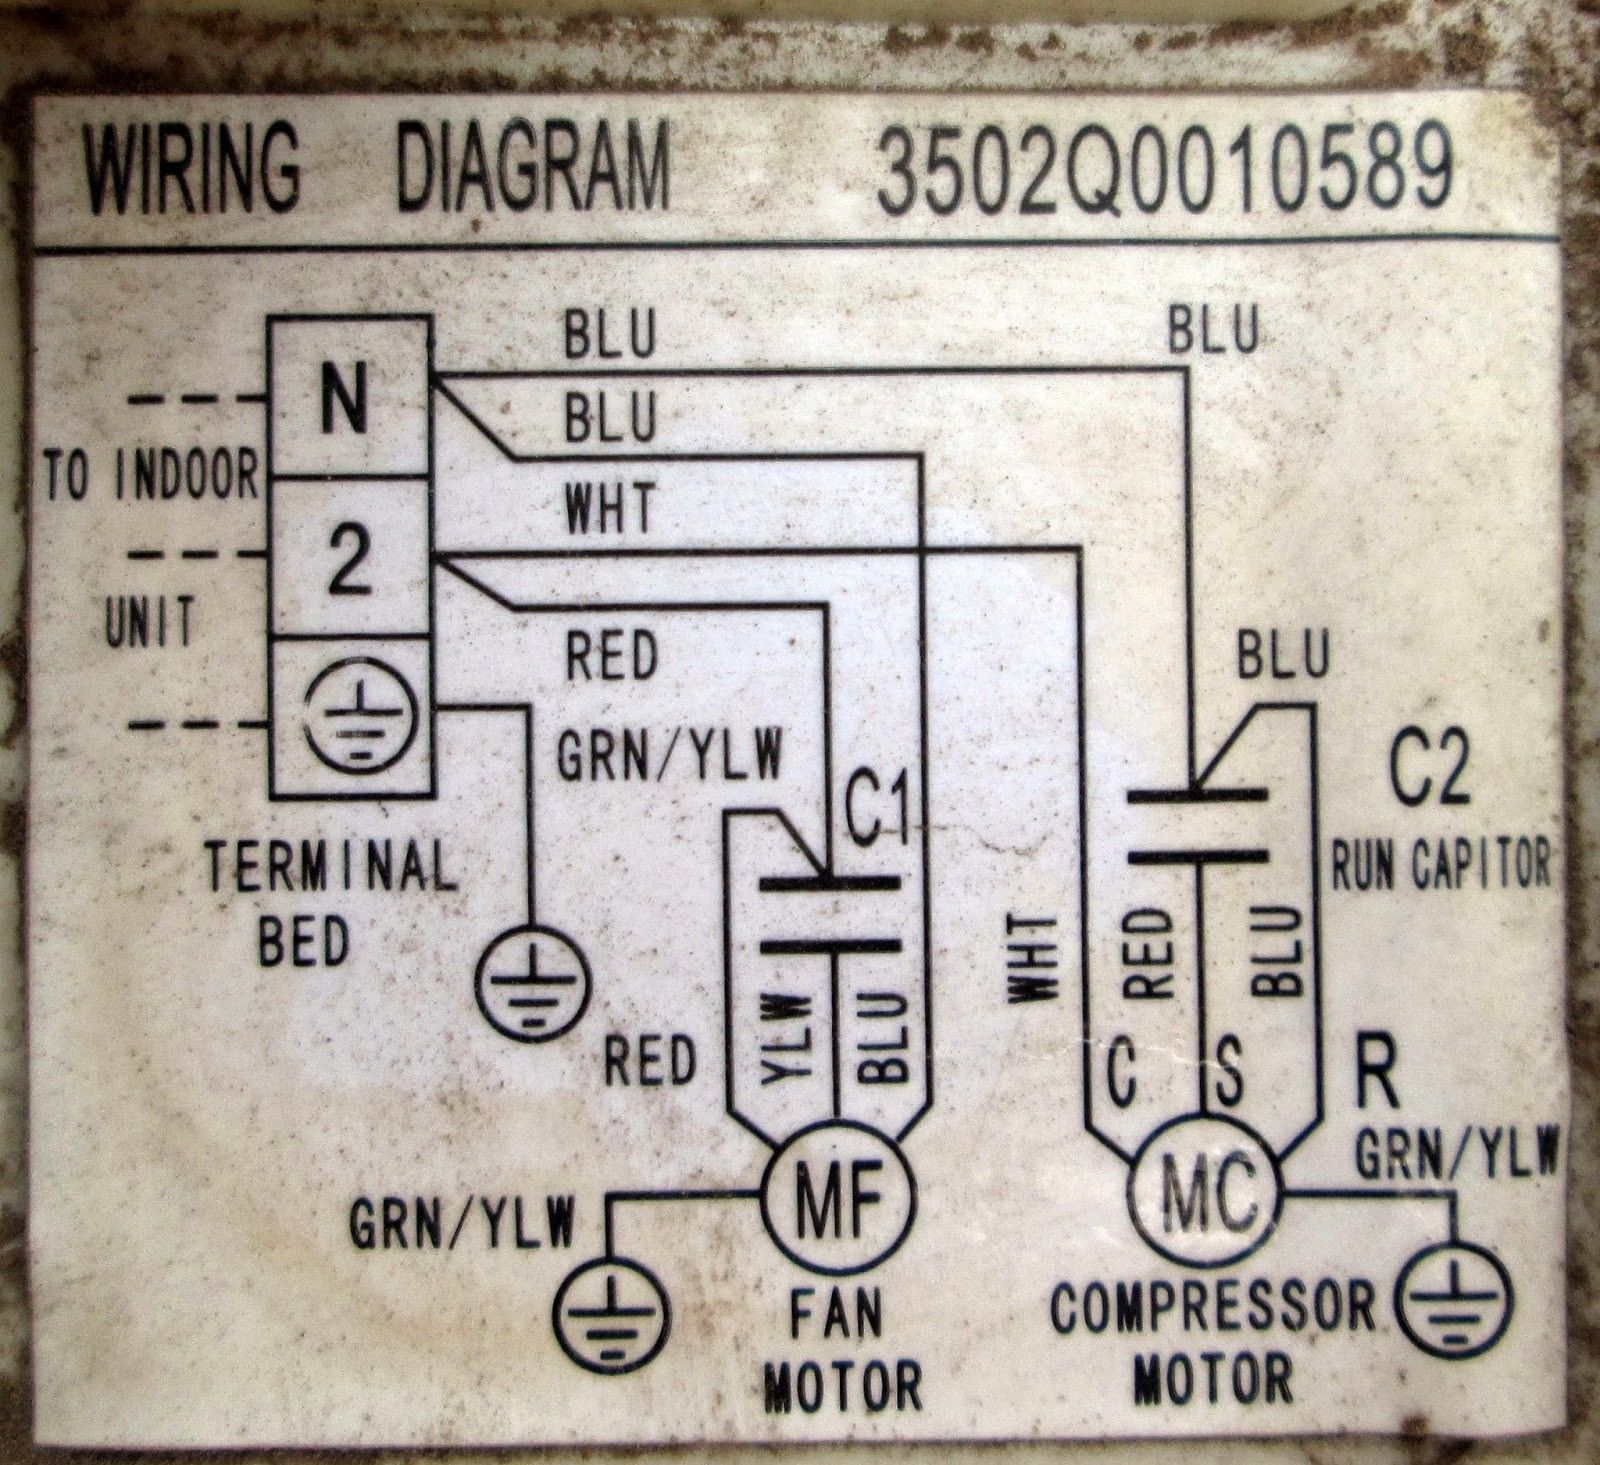 New Wiring Diagram Ac Sharp Inverter Diagram Diagramtemplate Diagramsample Check More Diagram Electrical Circuit Diagram Refrigeration And Air Conditioning